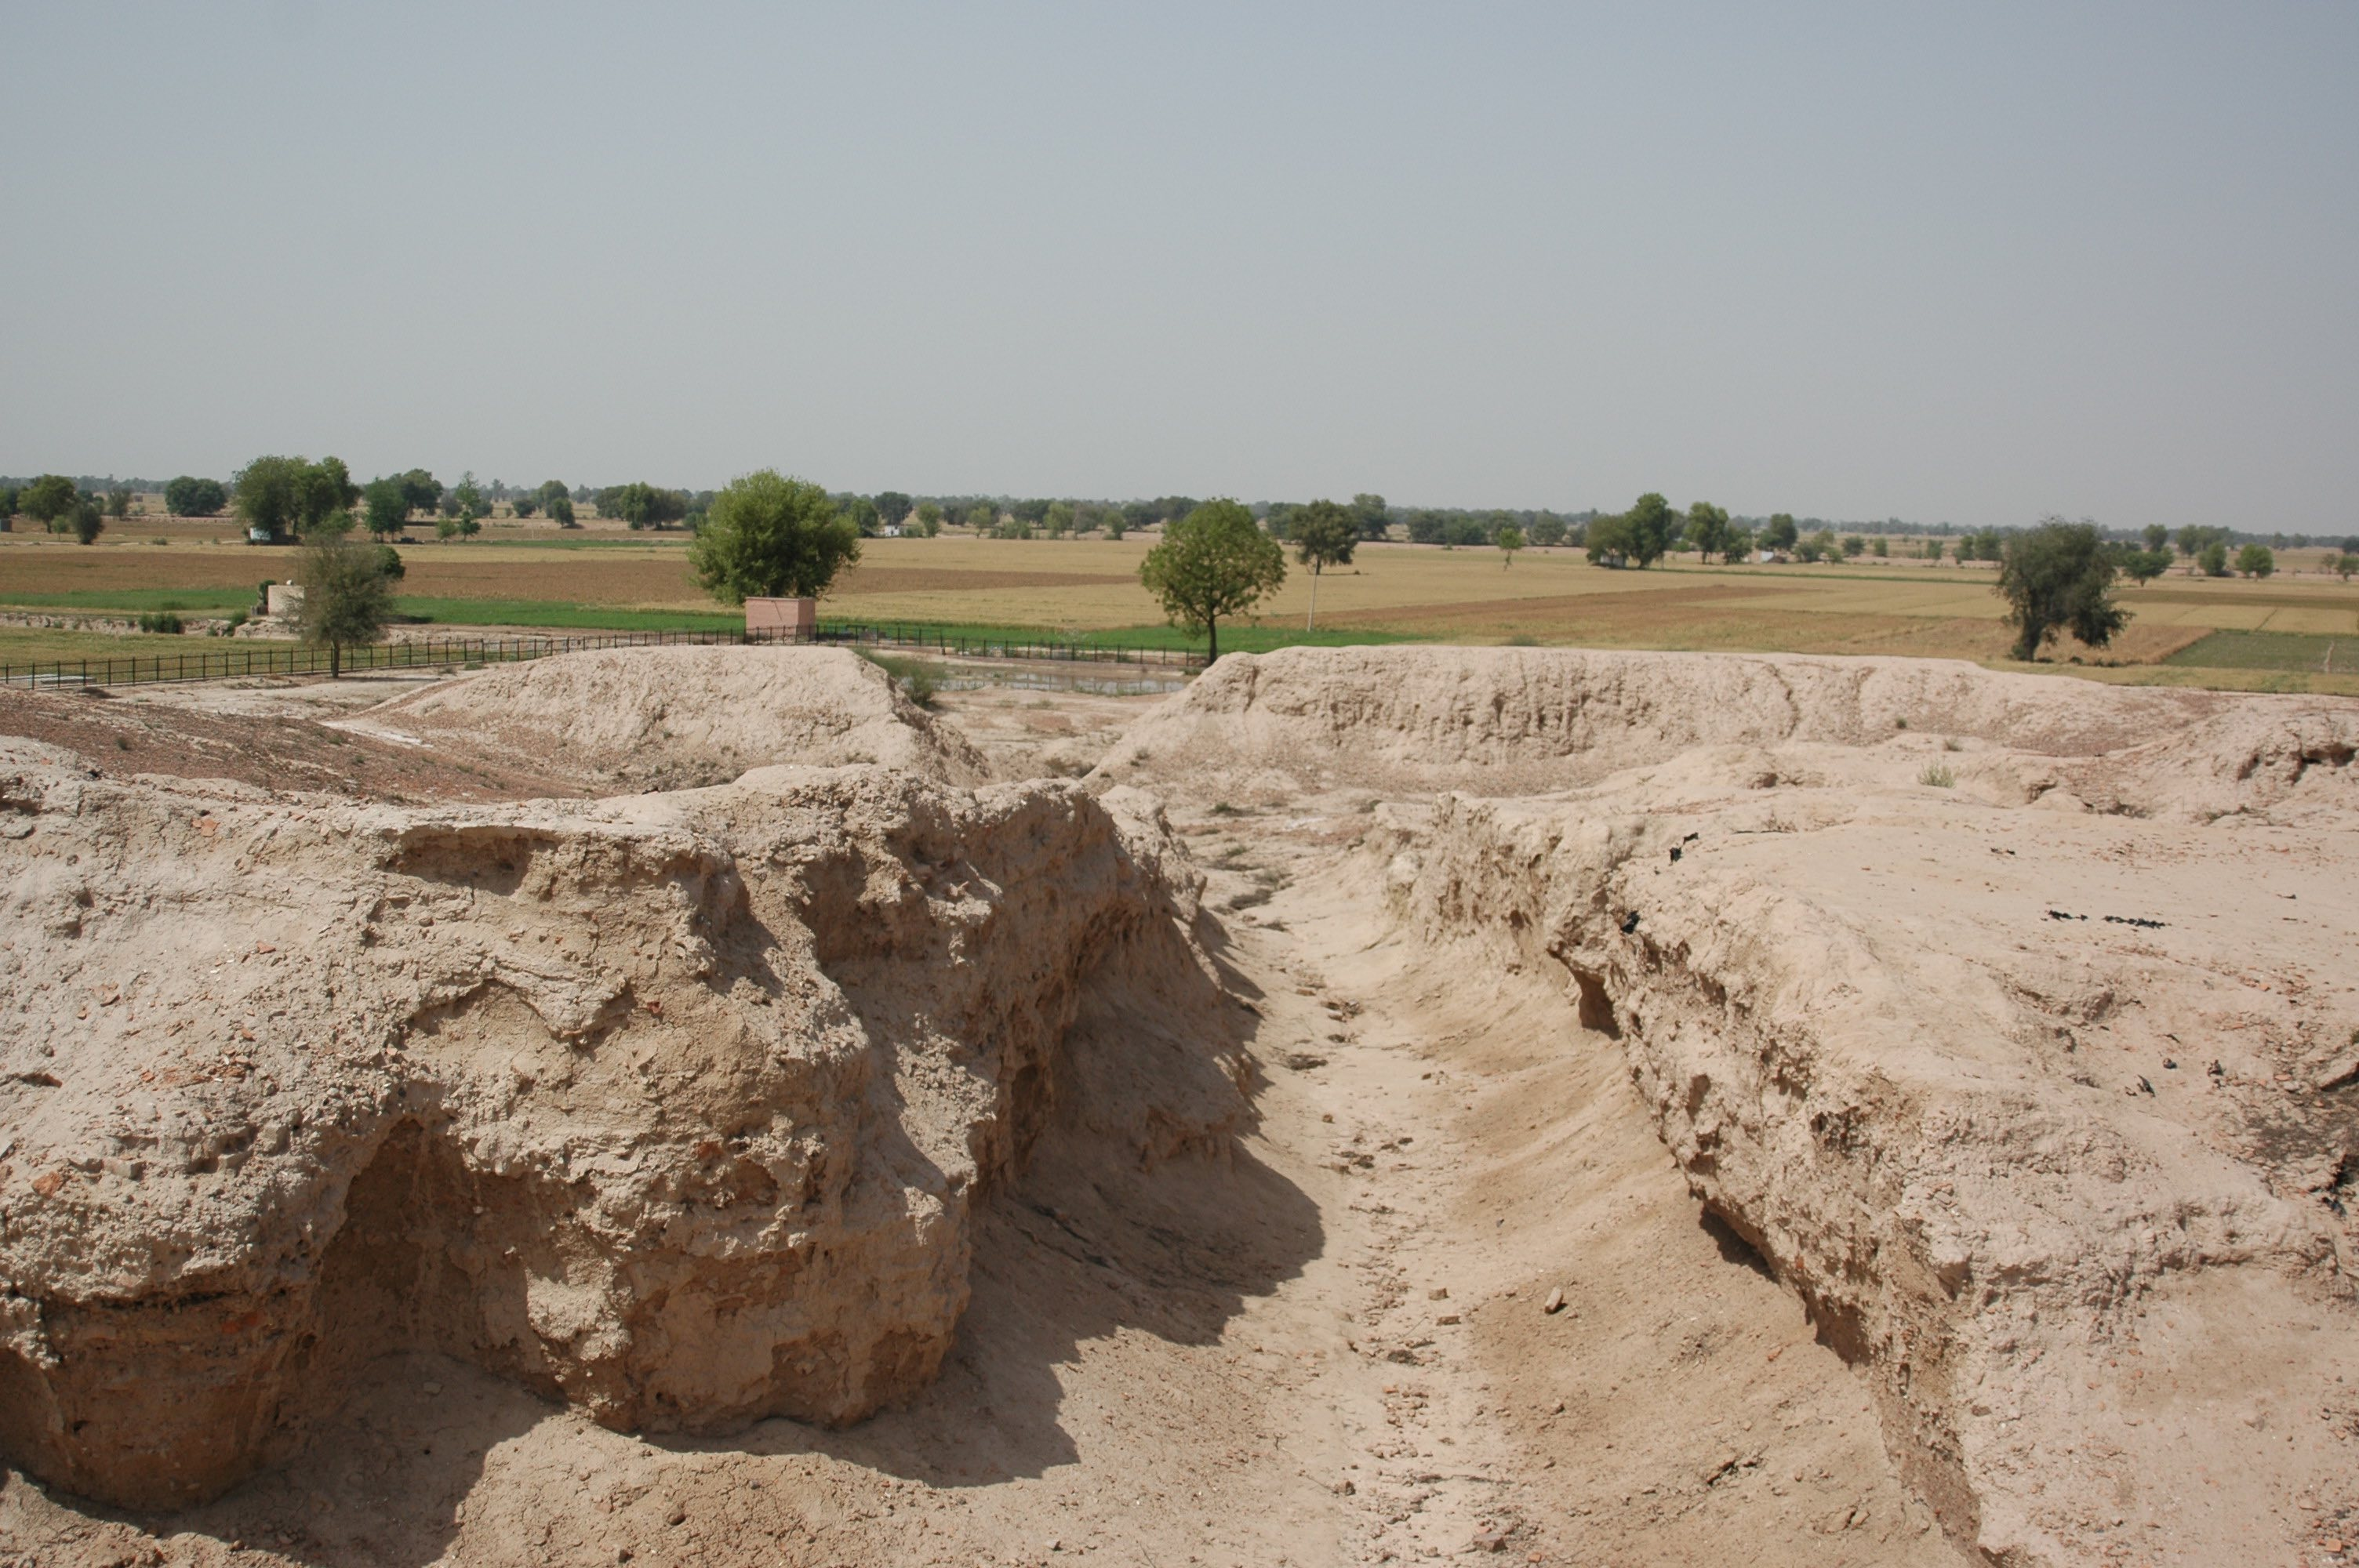 Remnant of a street in the urban centre of Kalibangan. The Ghaggar-Hakra palaeochannel can be seen in the distance. Credit: S. Gupta (Imperial College London)